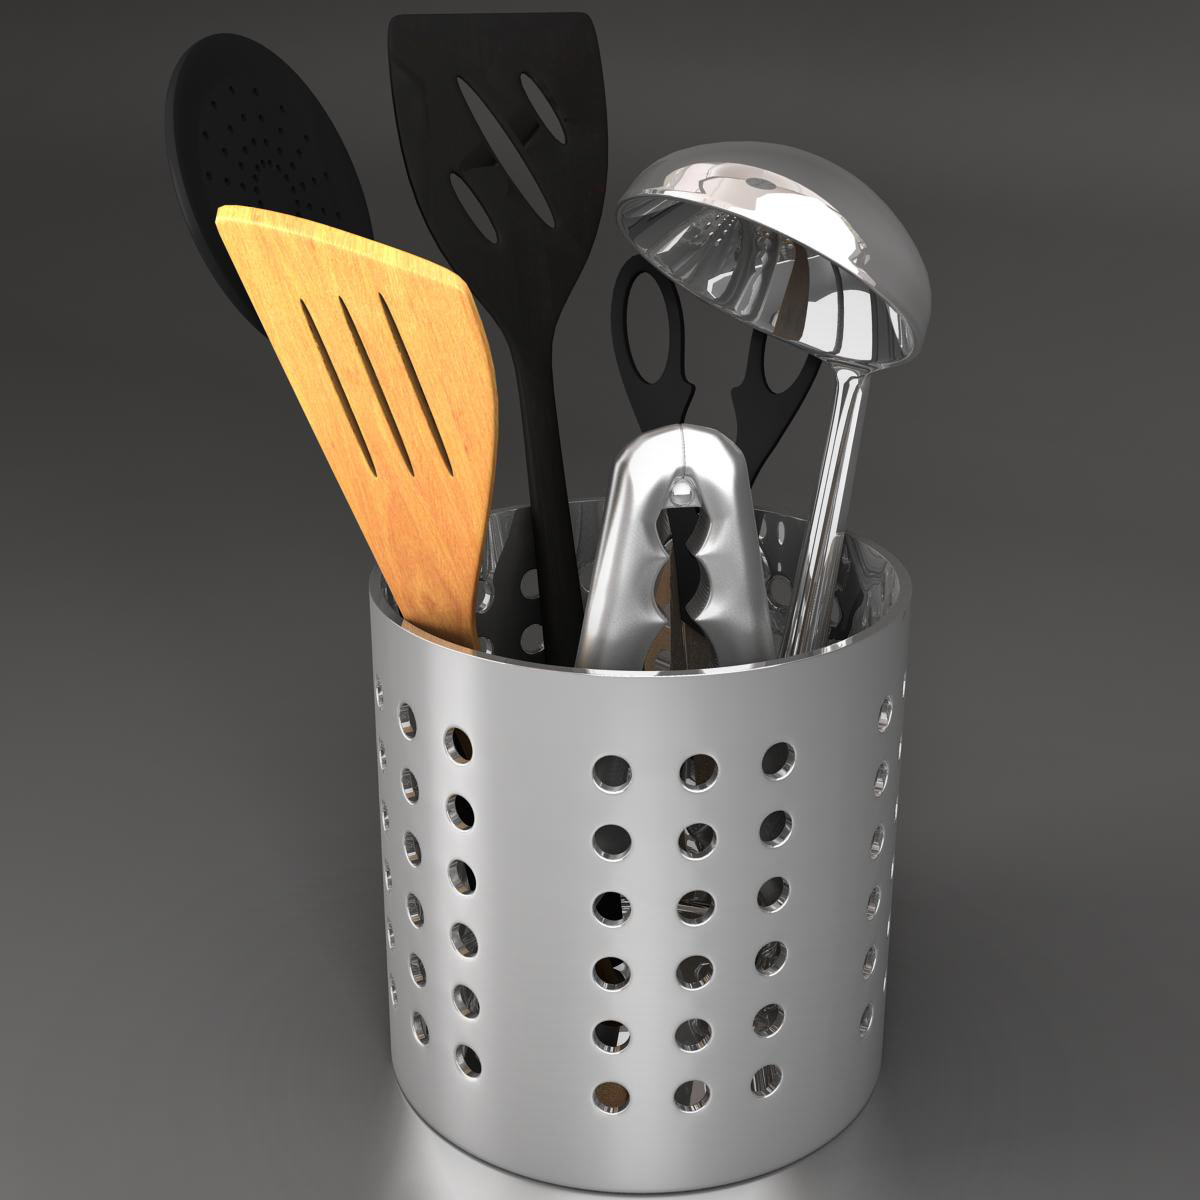 Kit kitche utensils 3d model max fbx c4d ma mb obj 159289